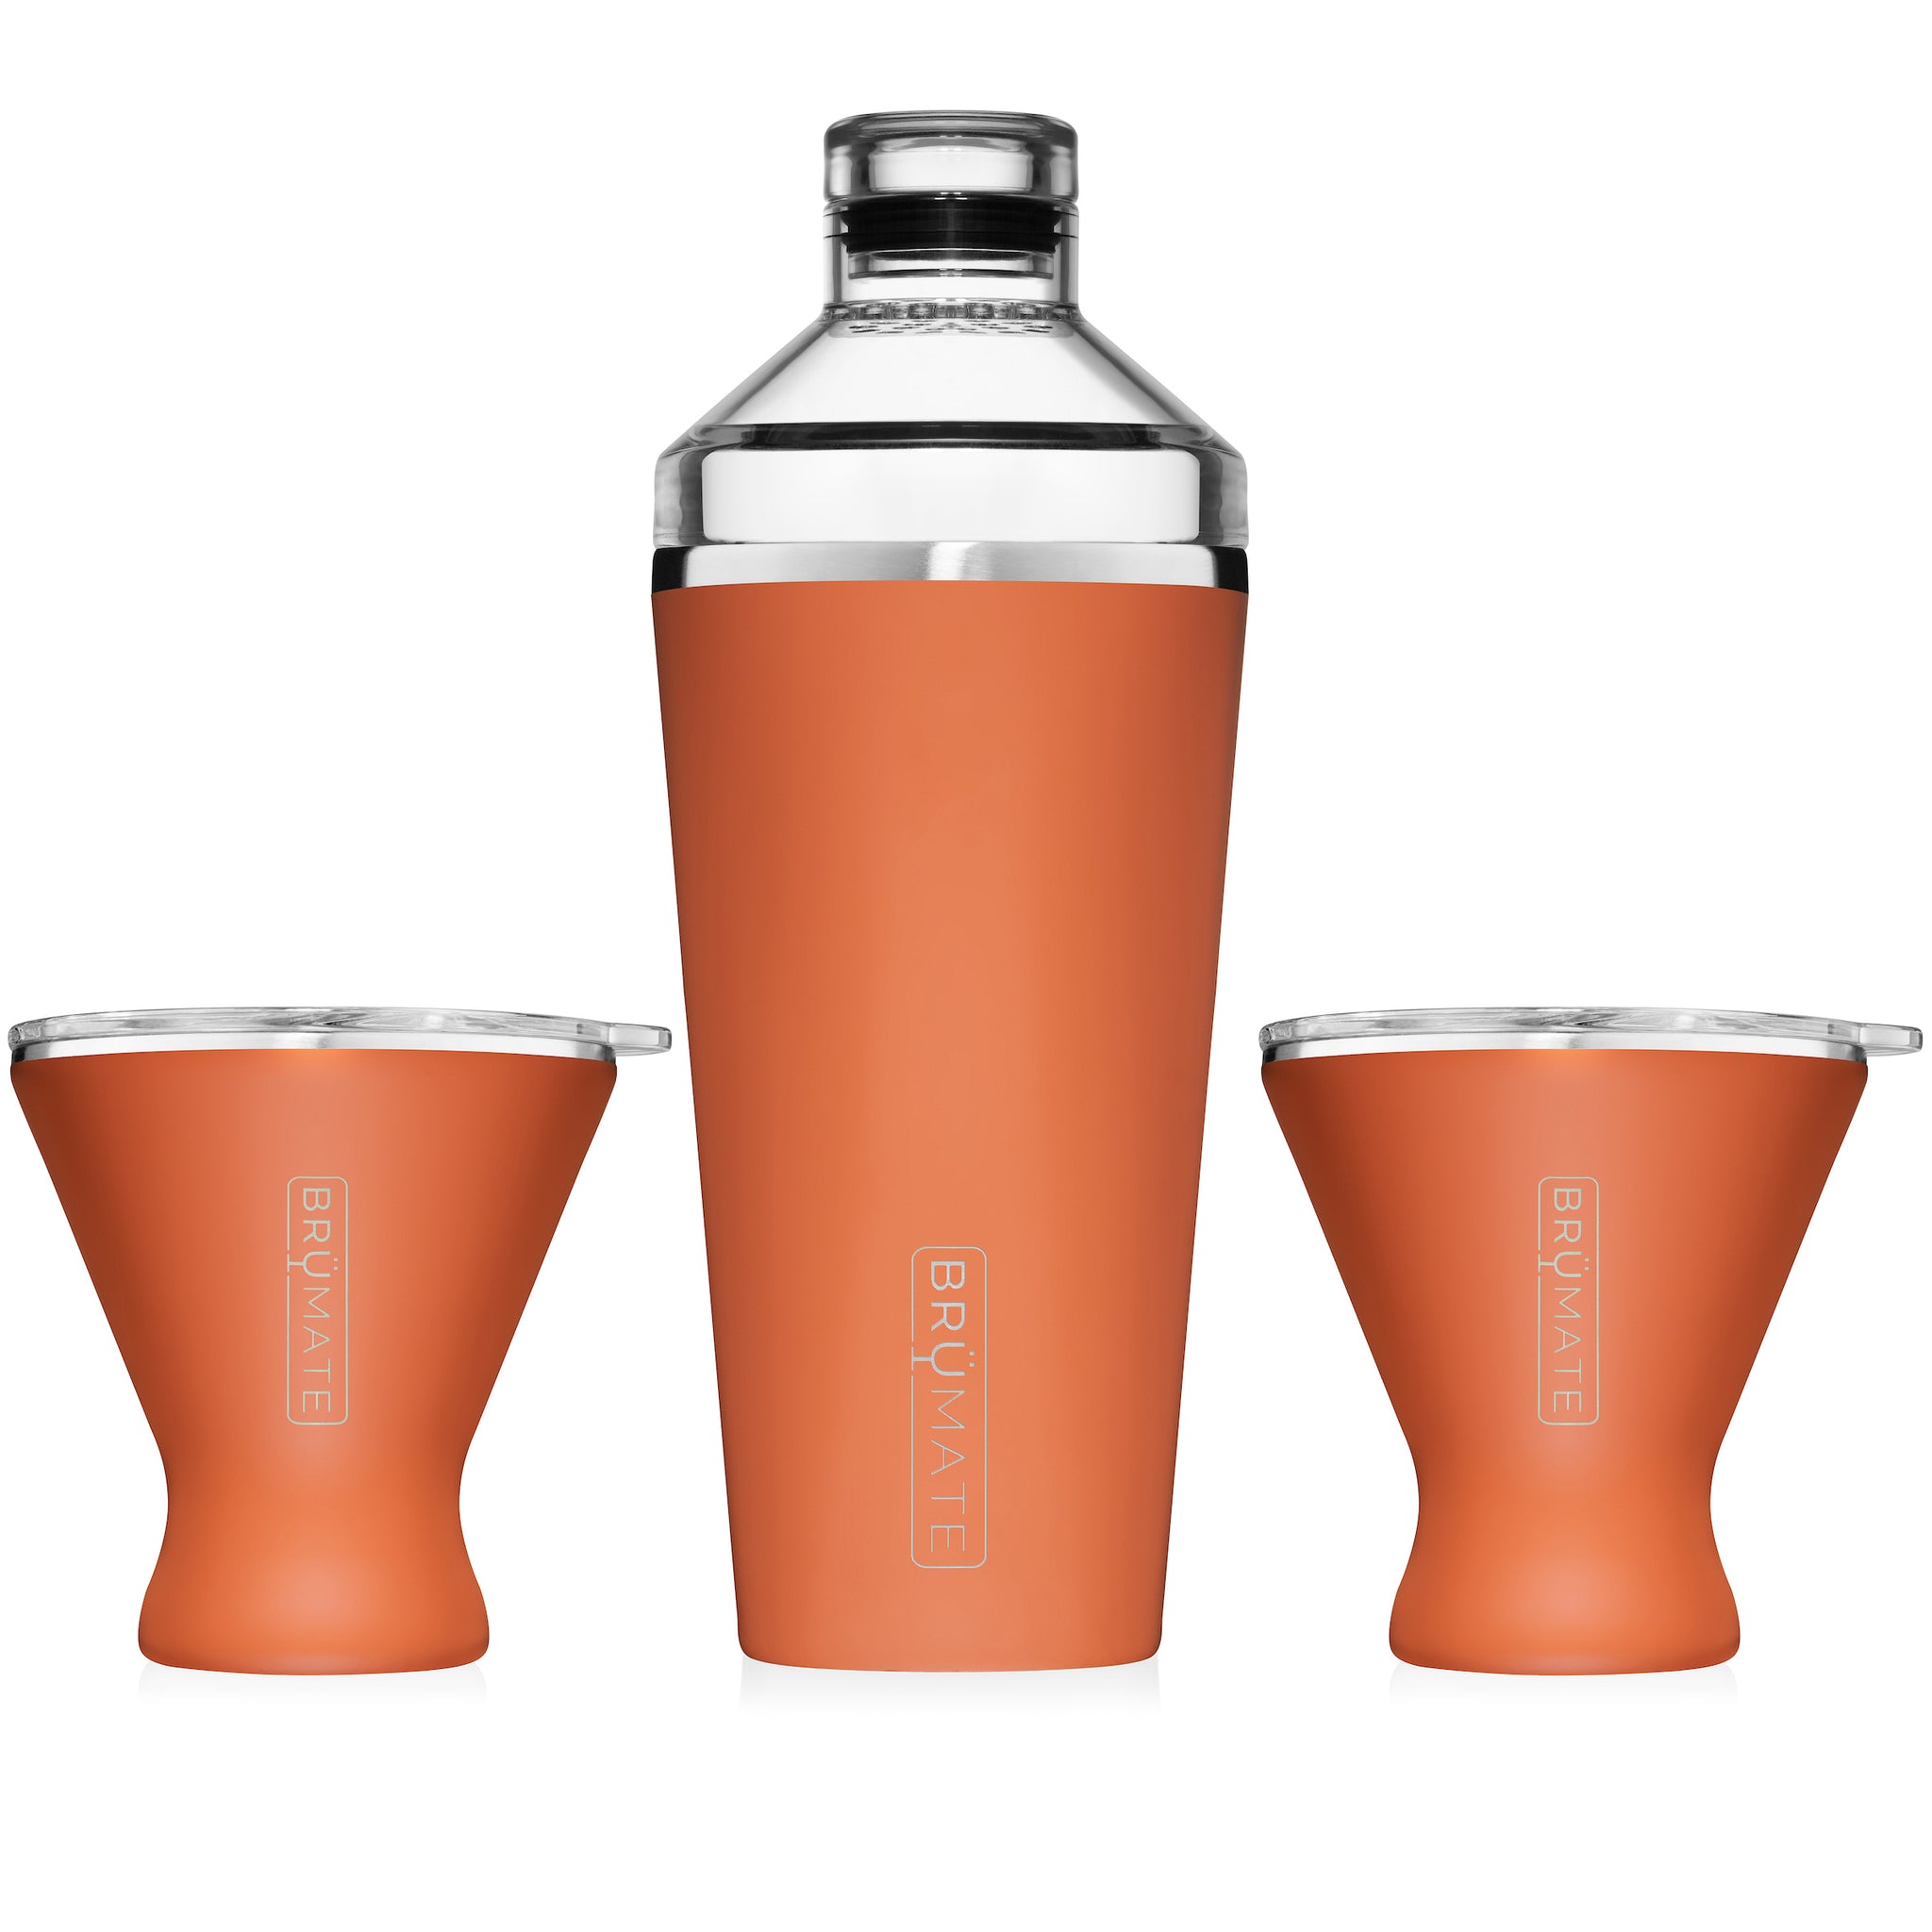 Cocktail Shaker + 2 MargTini 10oz Tumblers/Lids | Matte Clay